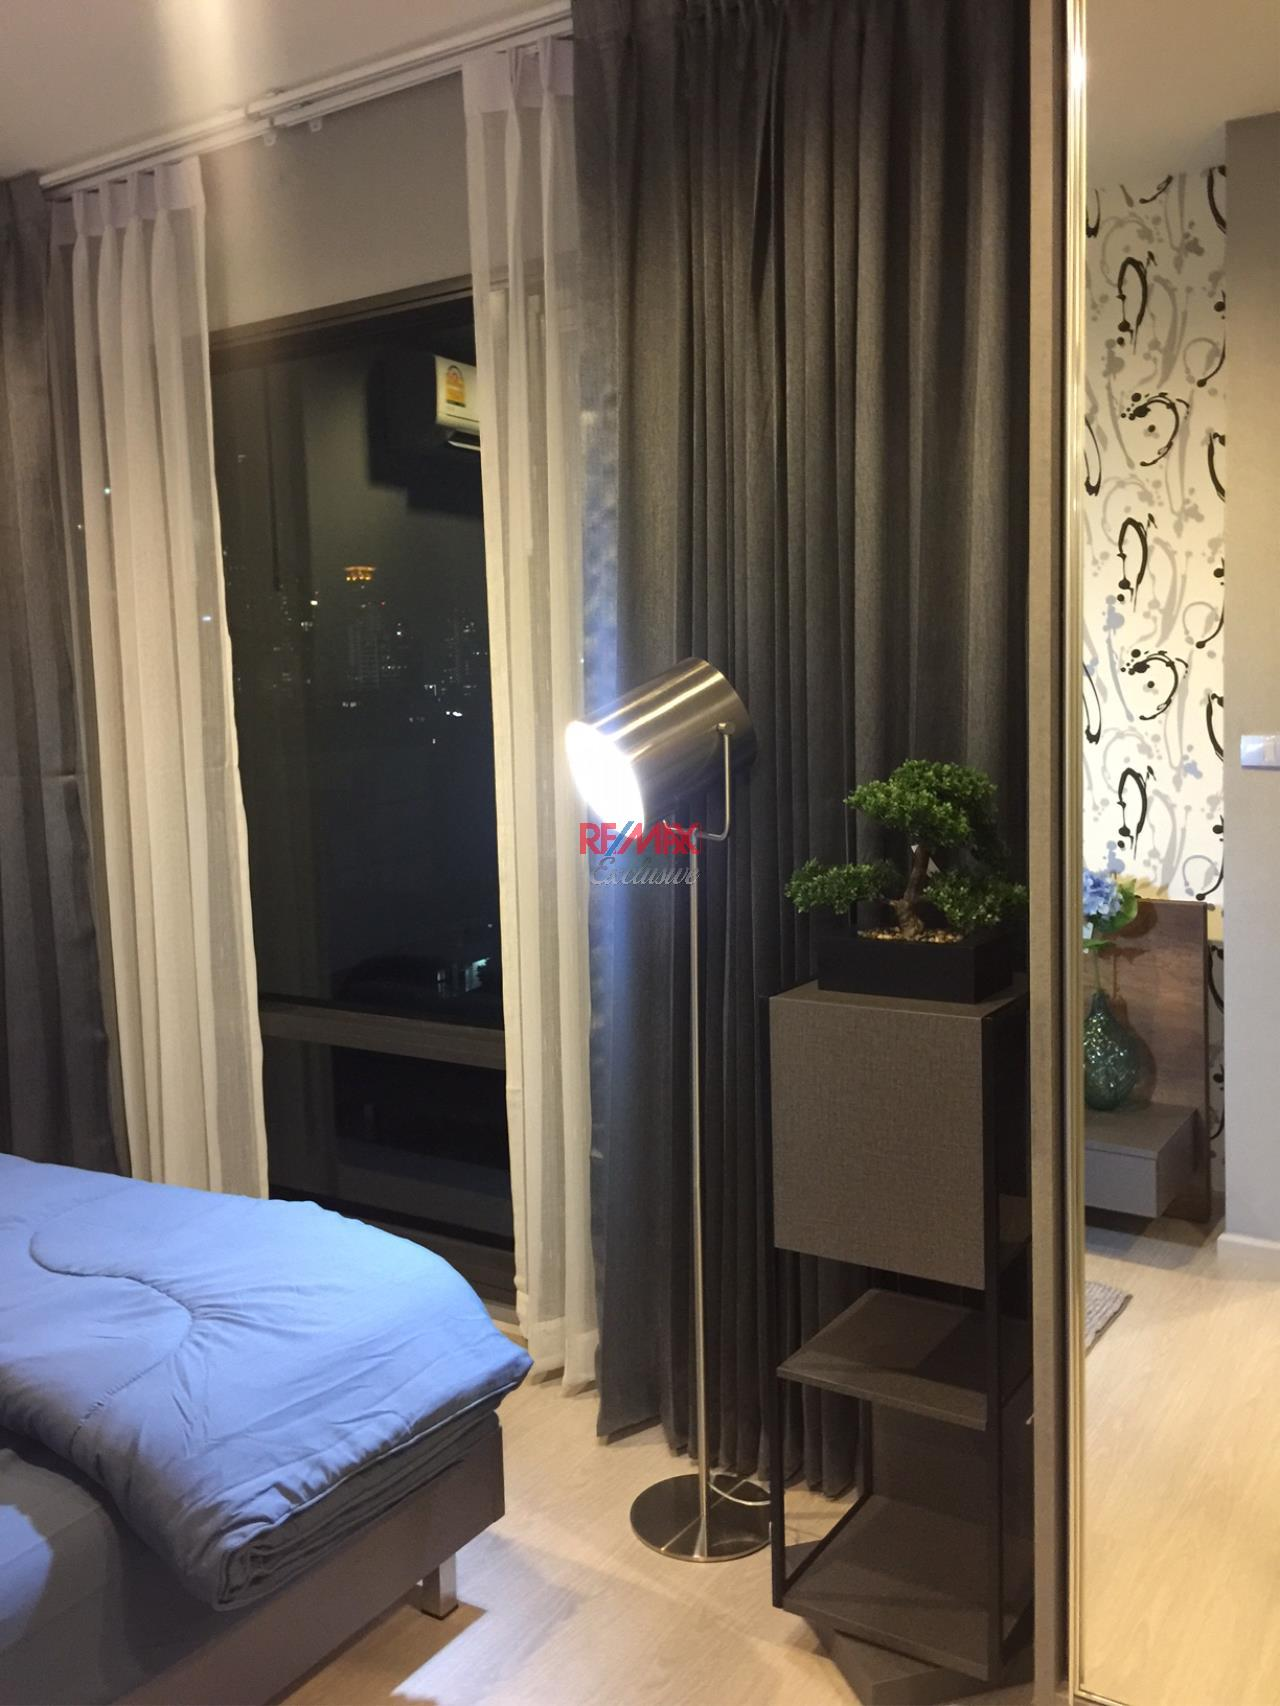 RE/MAX Exclusive Agency's Rhythm Sukhumvit 36-38 1 Bedroom, 42 Sqm., For Rent 35,000 THB!! 5